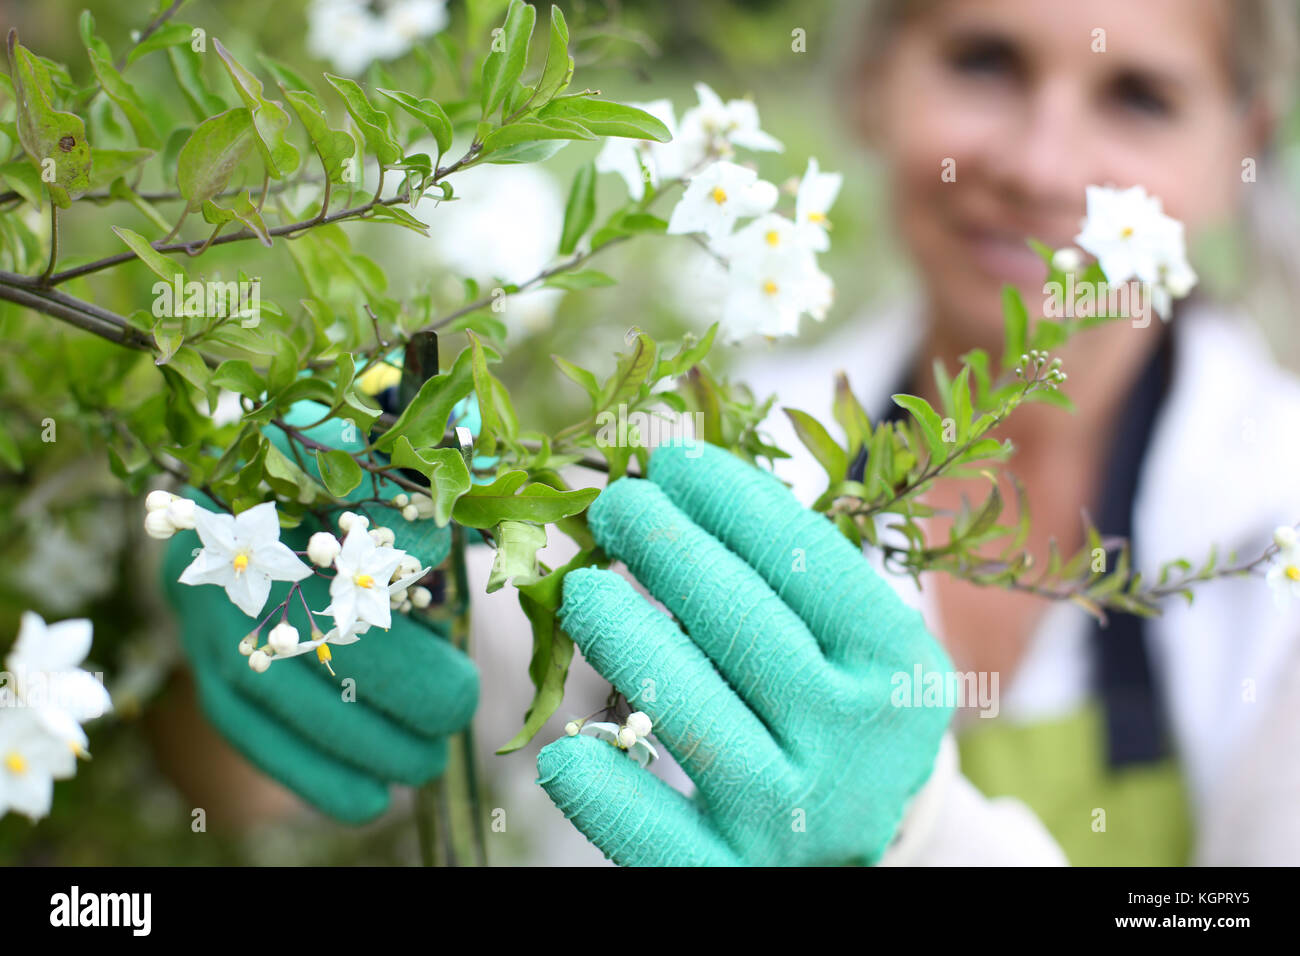 Senior woman cultivating flowers - Stock Image